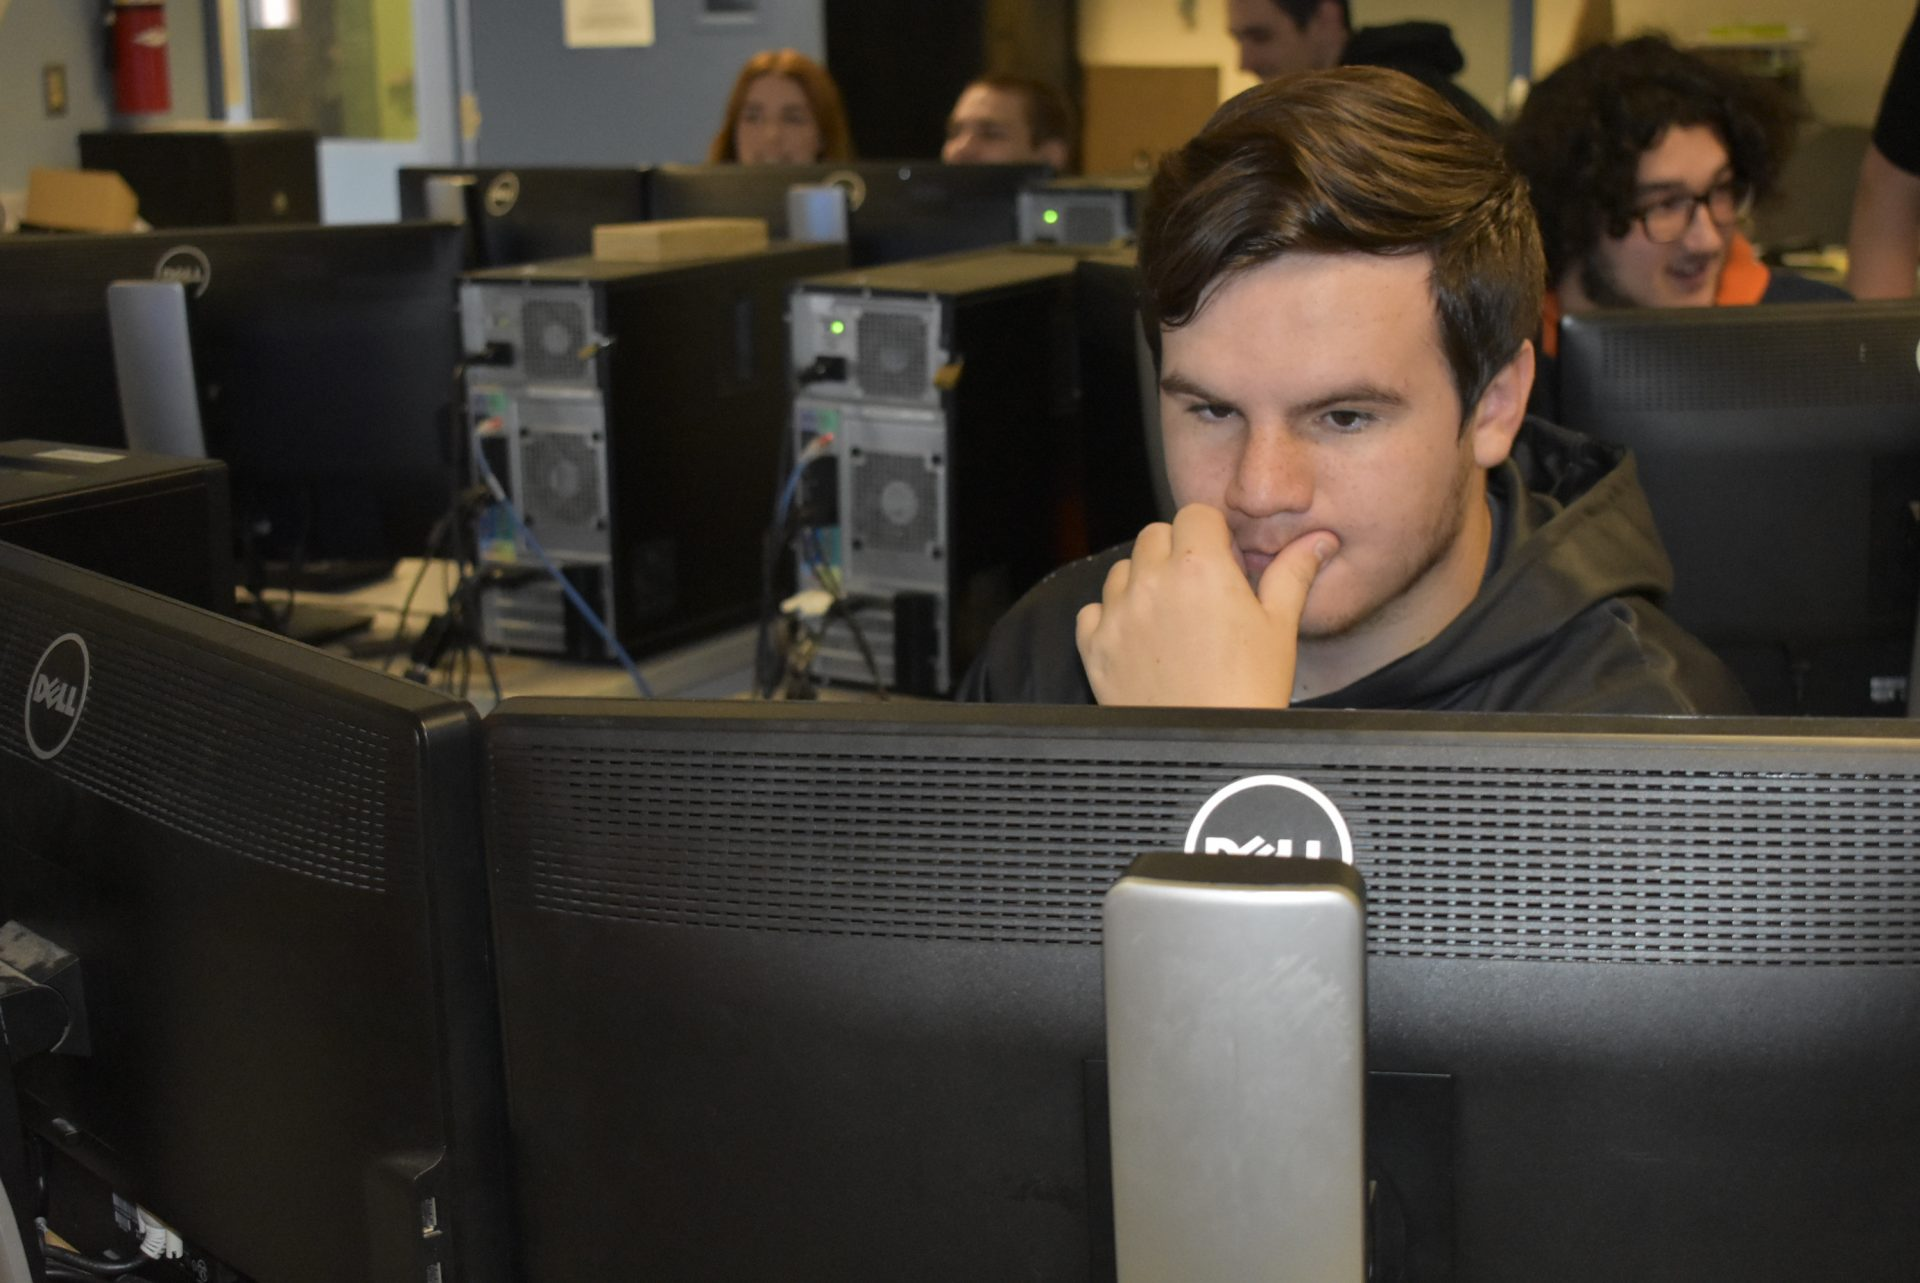 Programming student working on computer